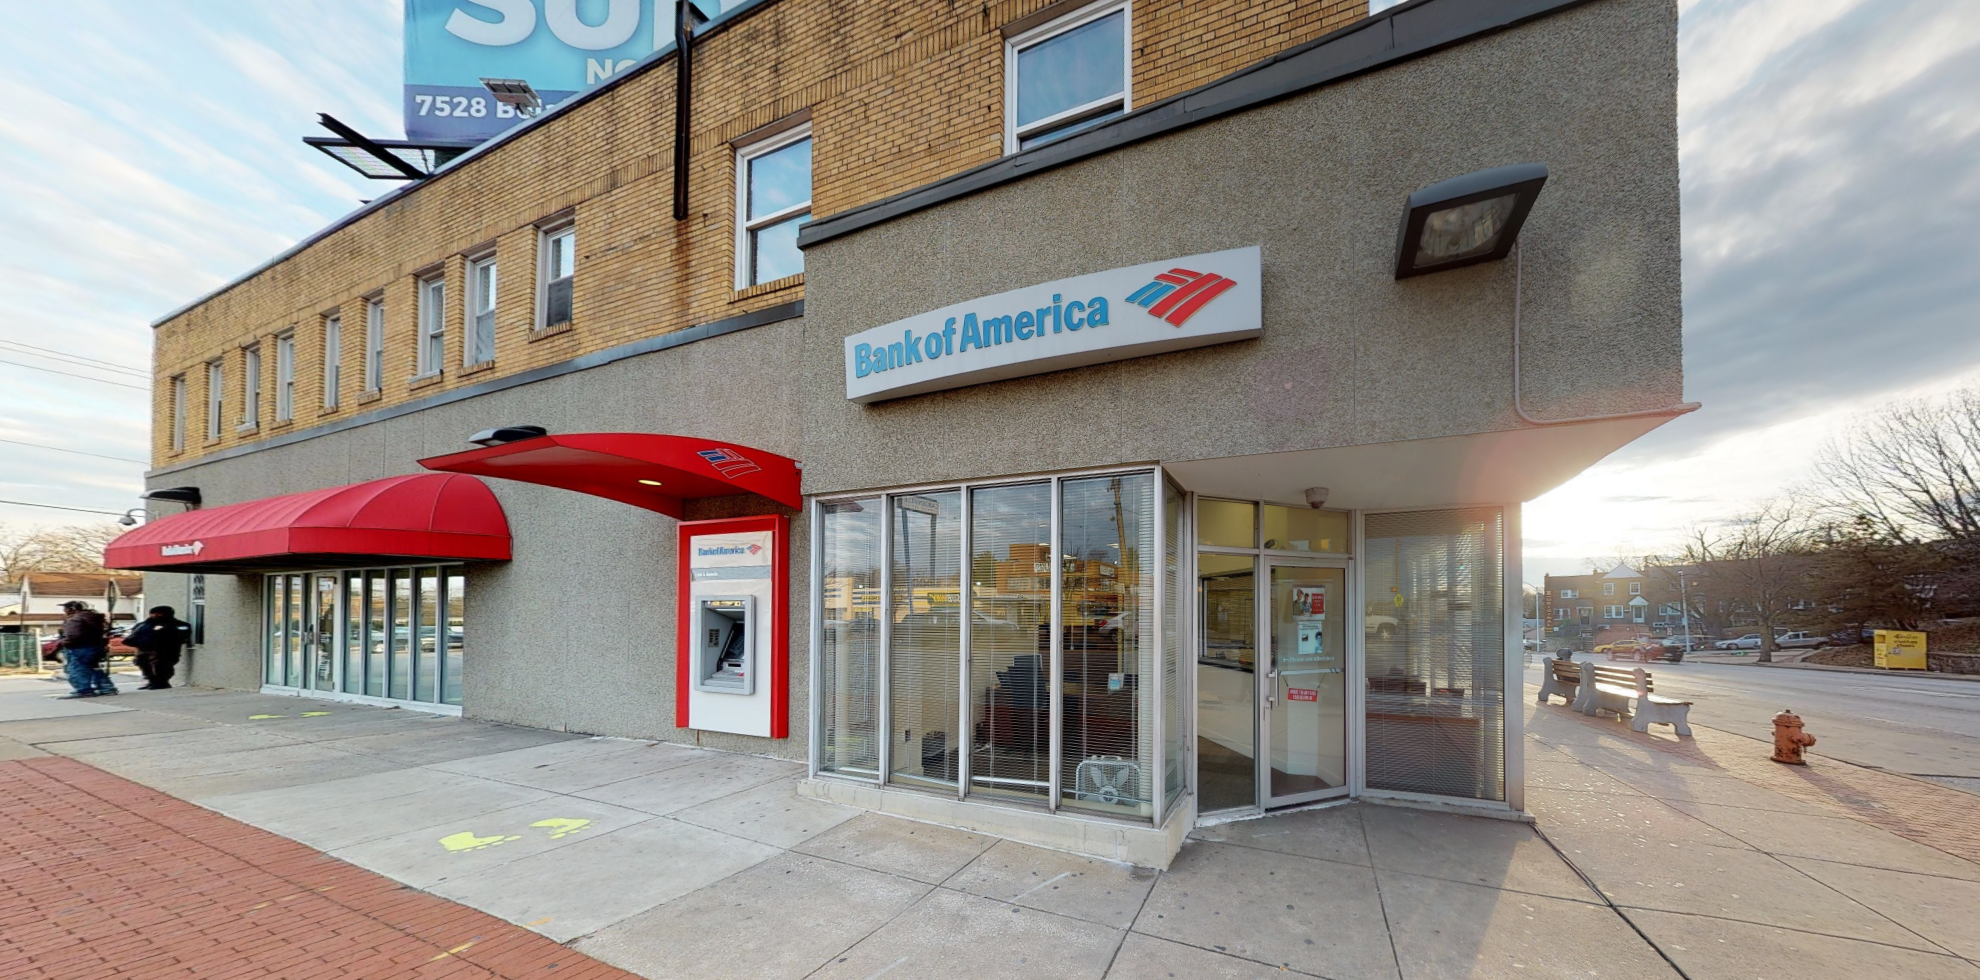 Bank of America financial center with drive-thru ATM | 5317 Belair Rd, Baltimore, MD 21206